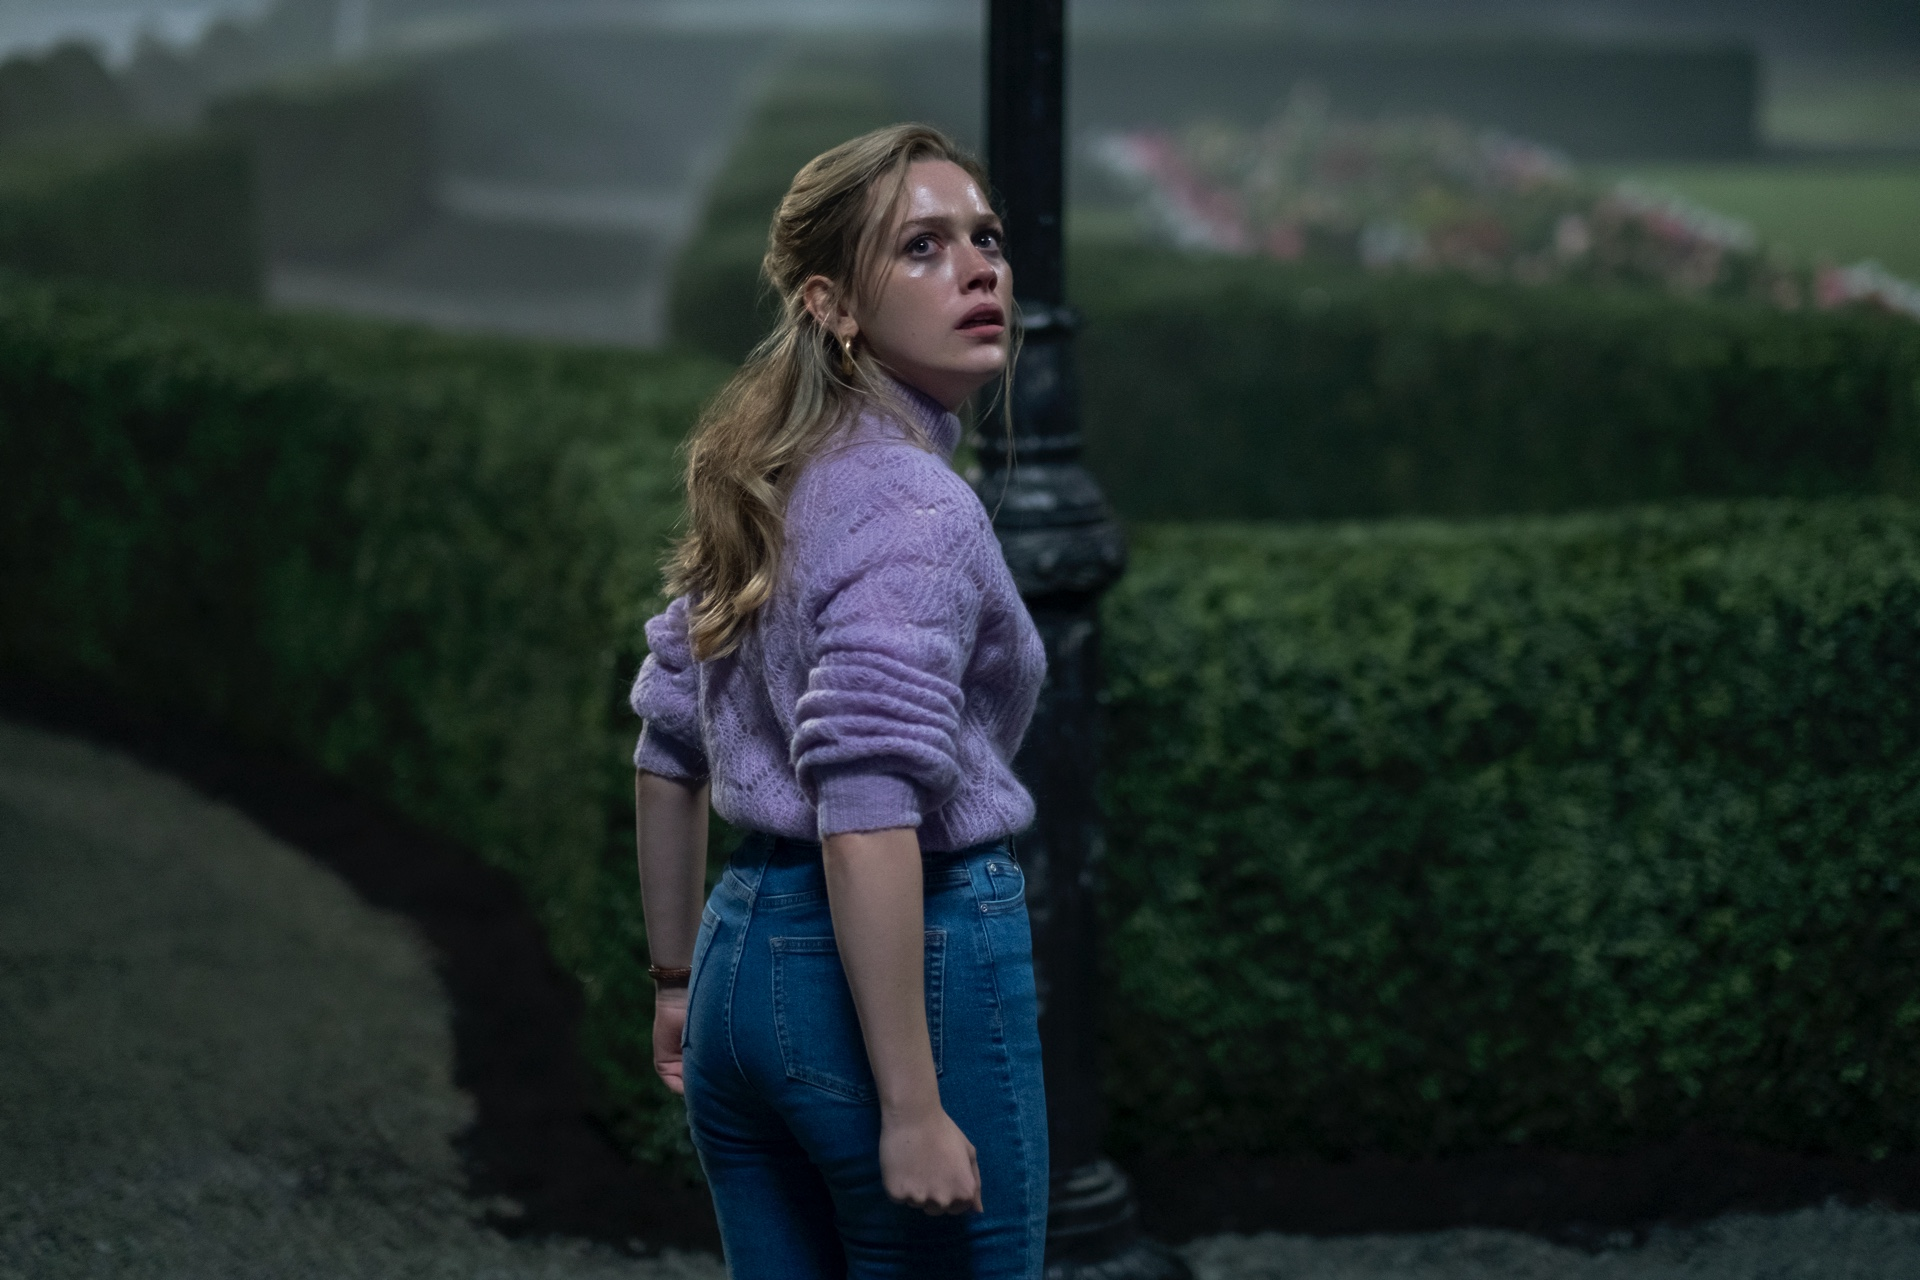 The Haunting Of Bly Manor Trailer Arrives To Mark The Beginning Of Spooky Season Den Of Geek